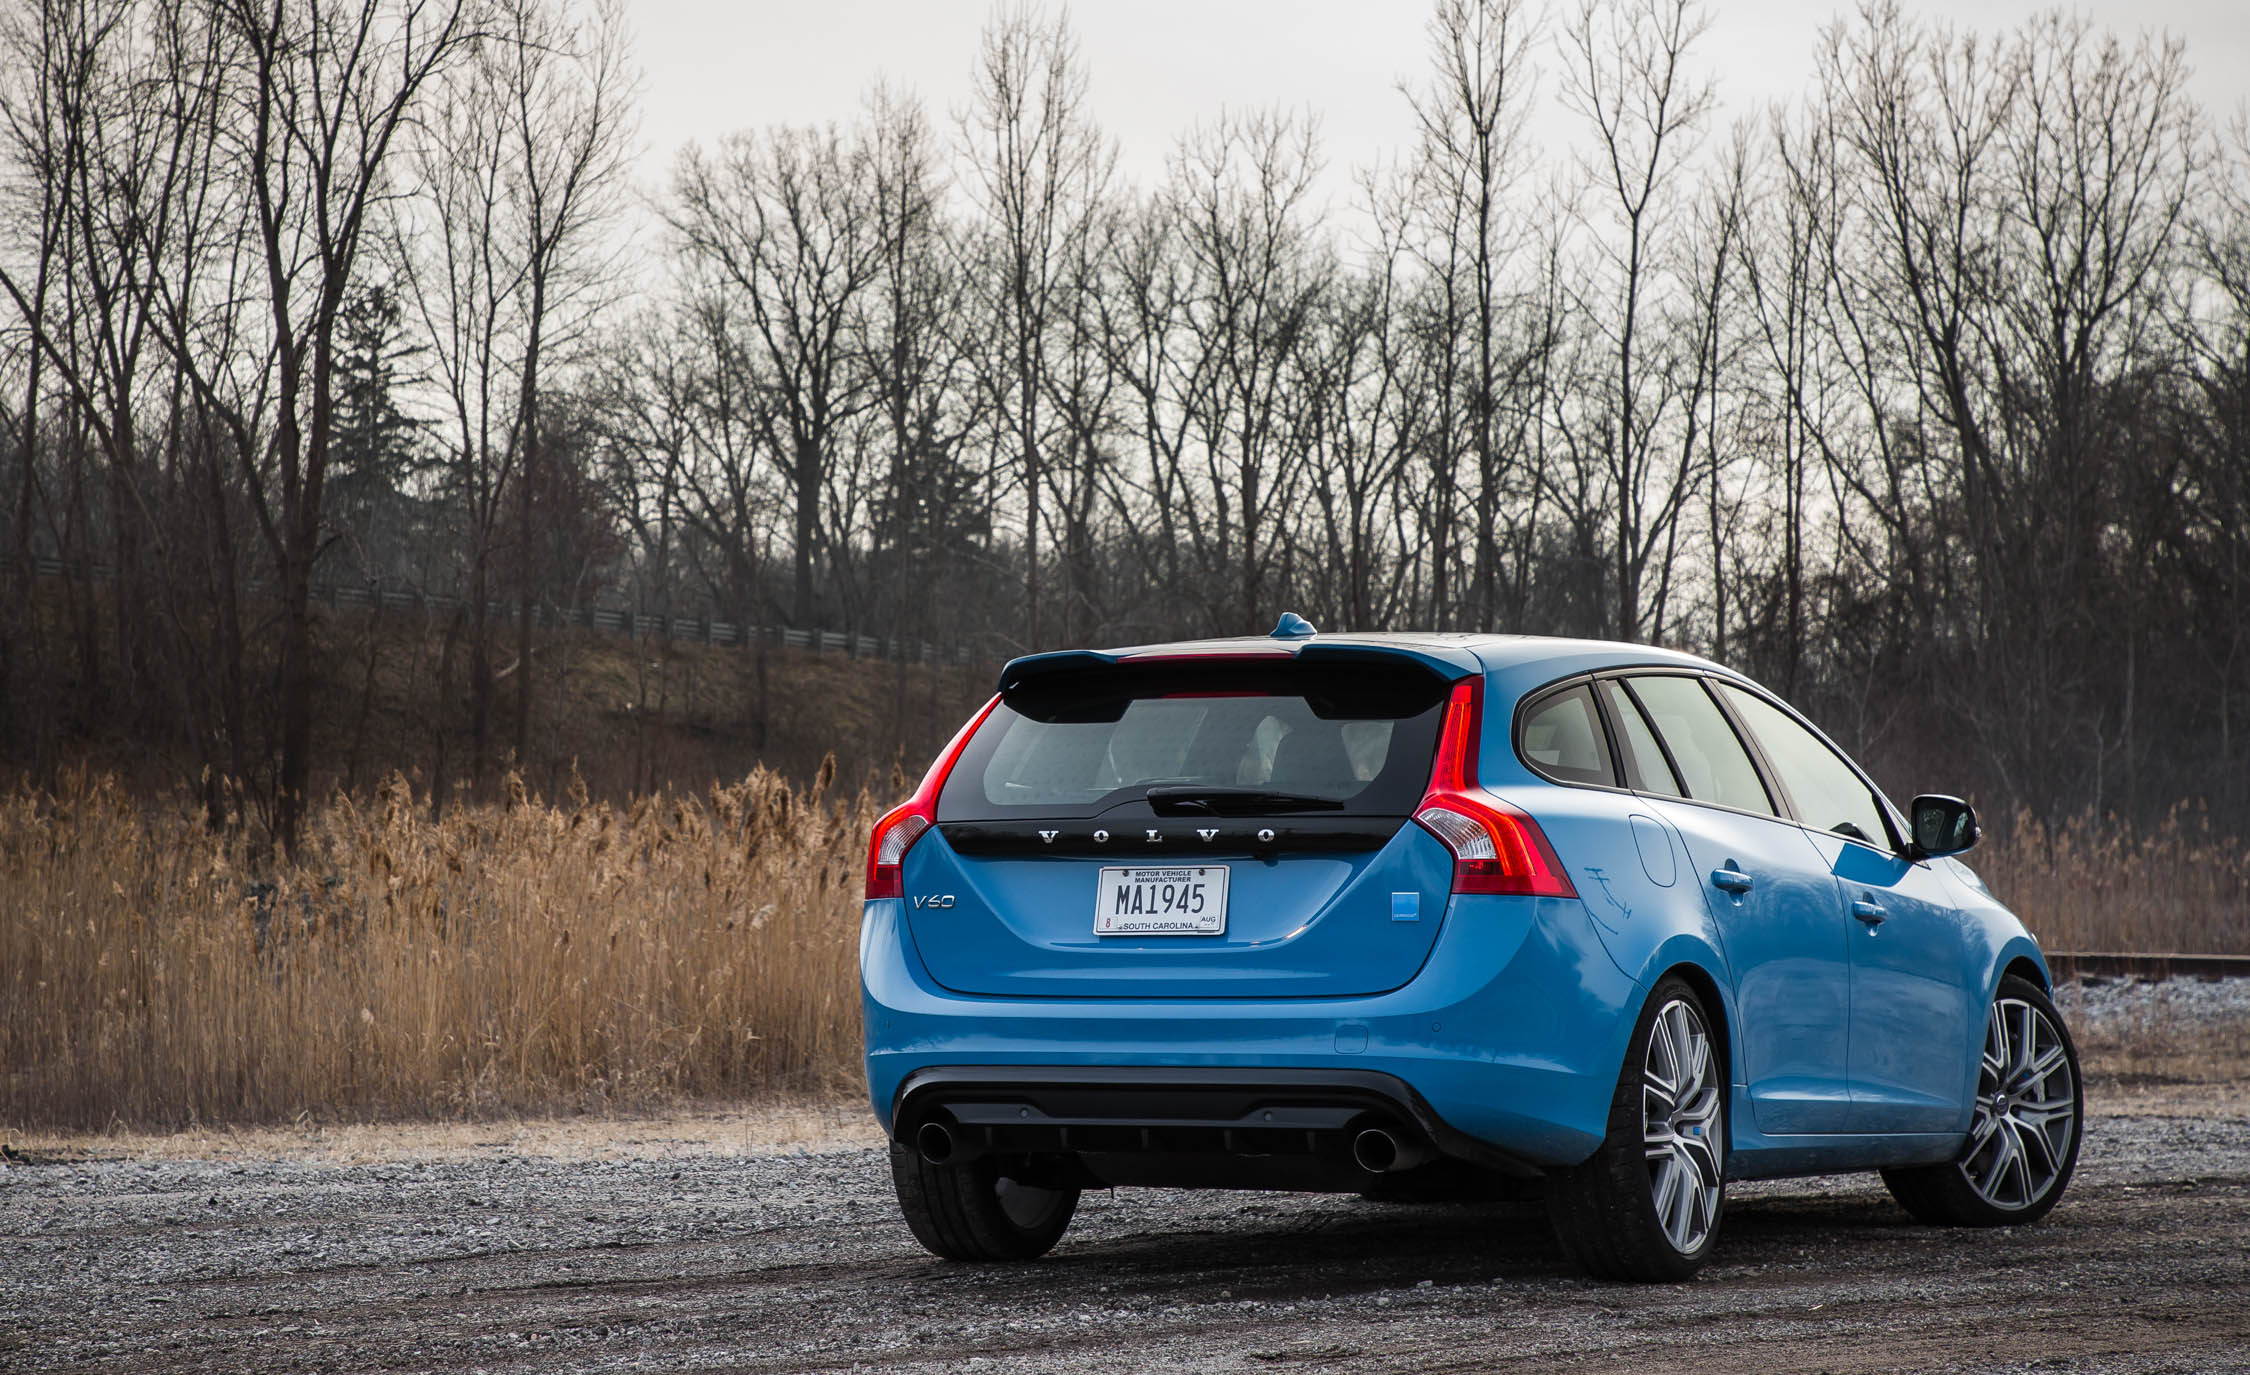 2017 Volvo V60 Polestar Exterior Rear (Photo 4 of 53)